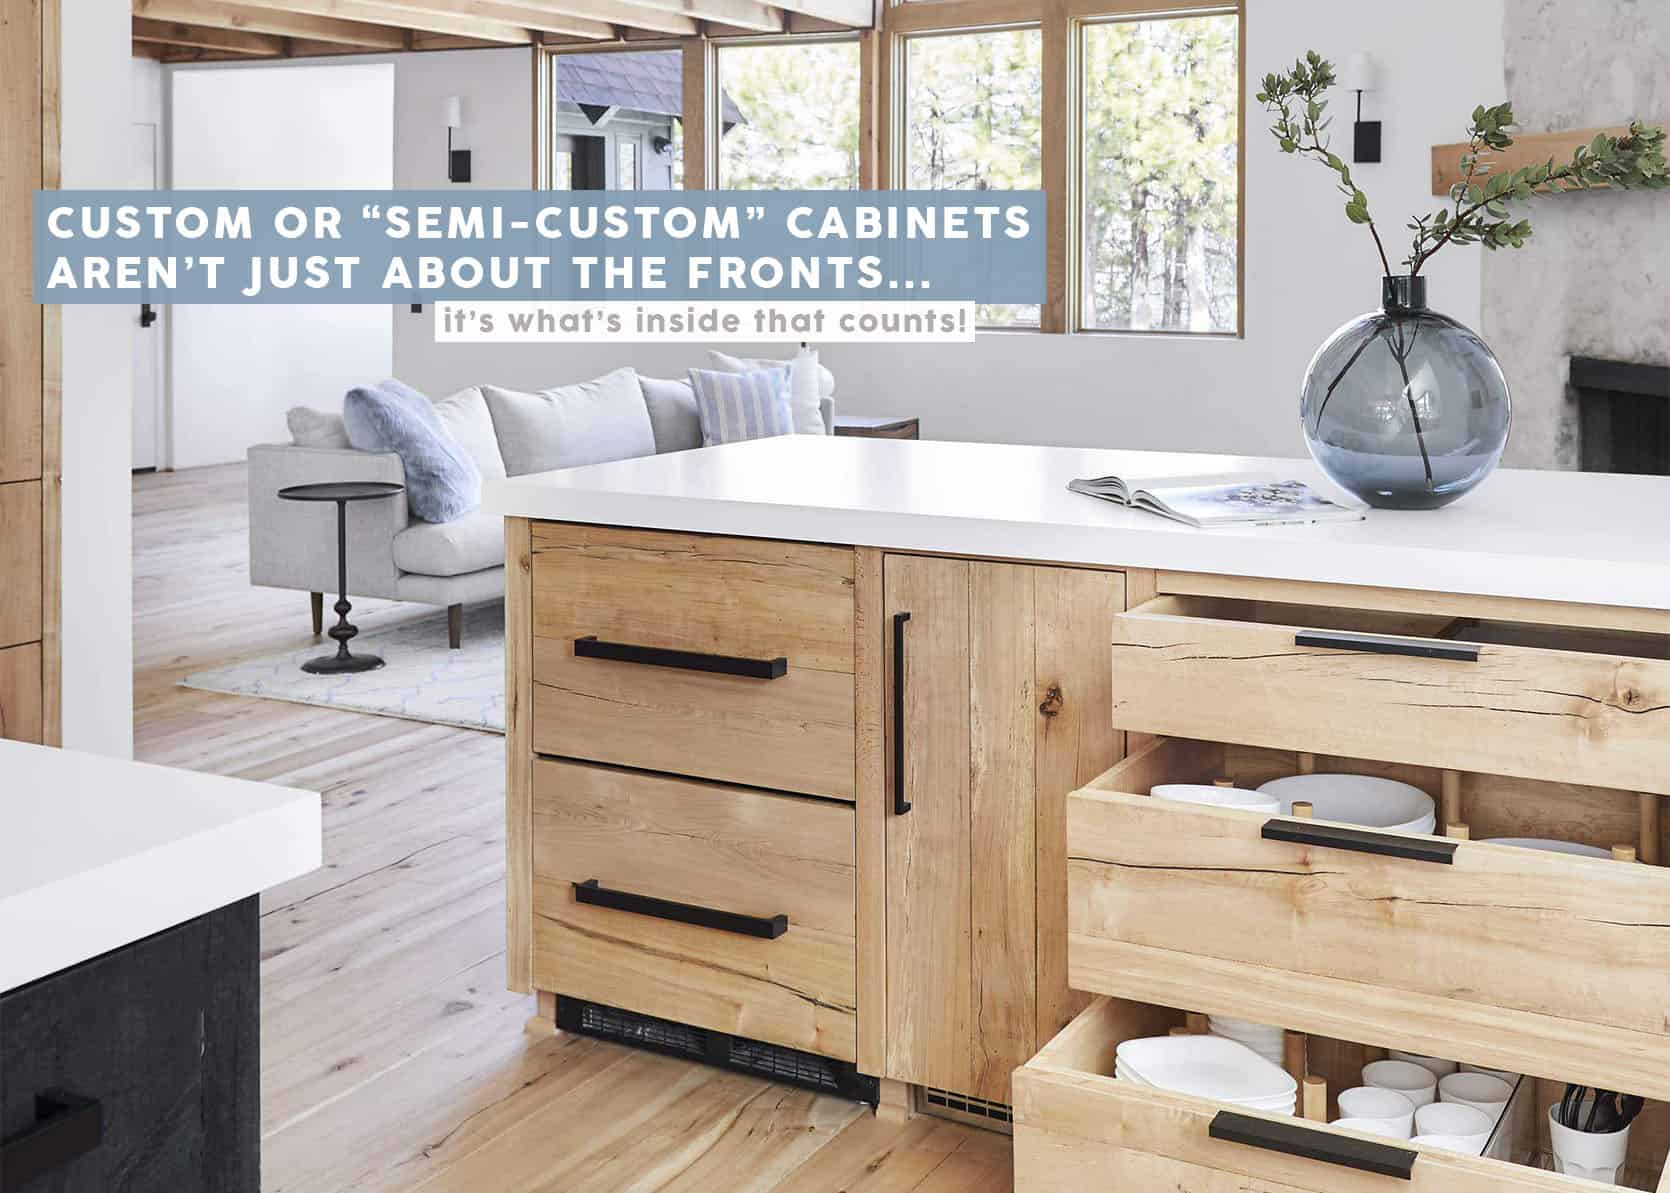 Semi-Custom Cabinets Don't Stop At The Fronts (And IKEA Isn't Your Only Budget-Friendly Option Anymore)